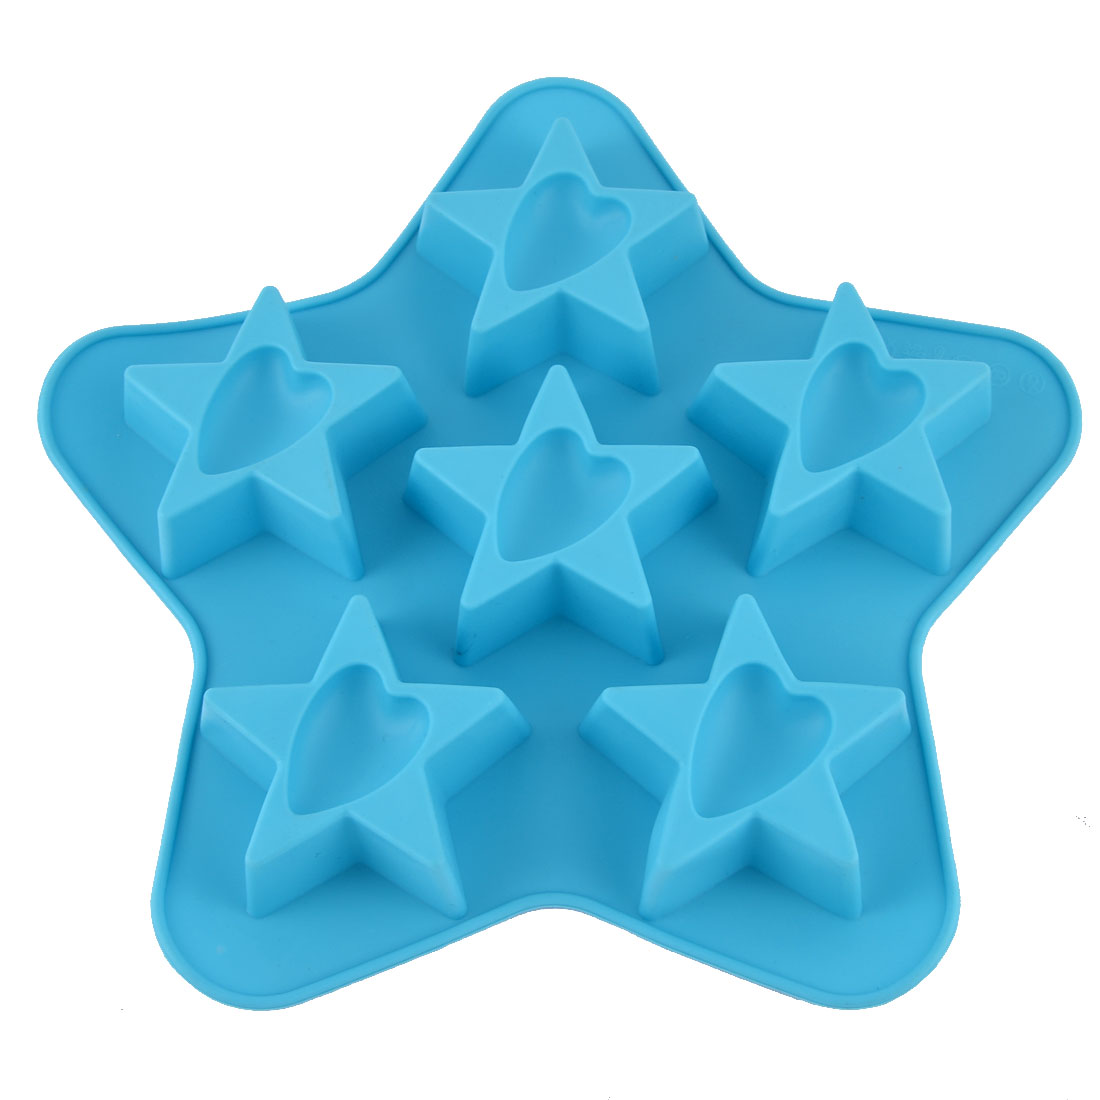 Silicone Pentastar Heart Shape Home Kitchen Bakeware Cake Baking Pan Mold Blue